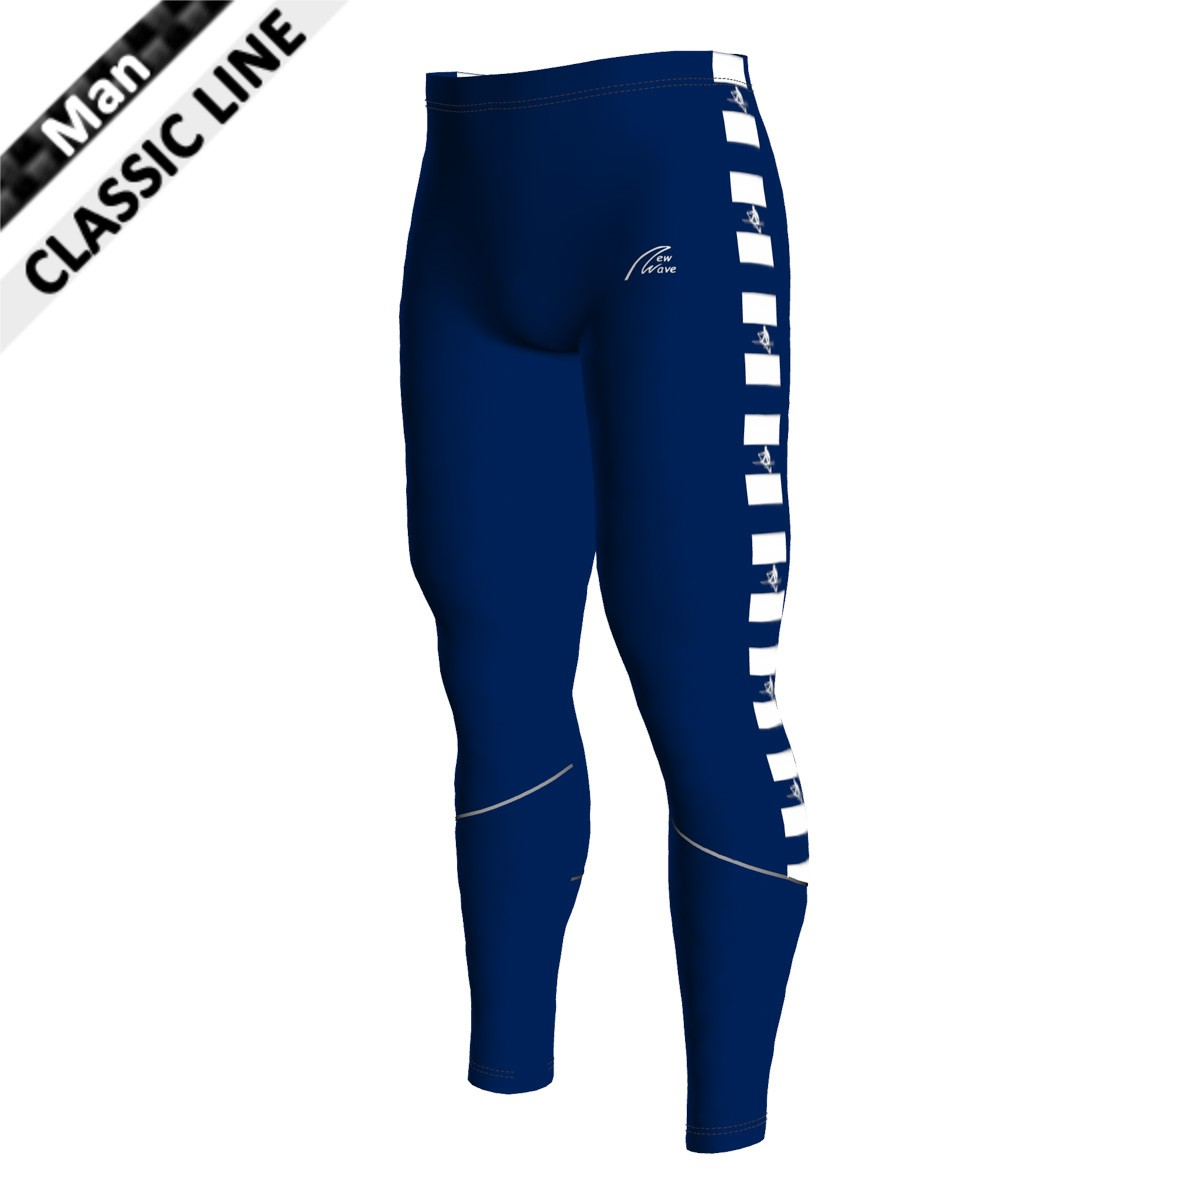 Basic Tight - Man marine blau